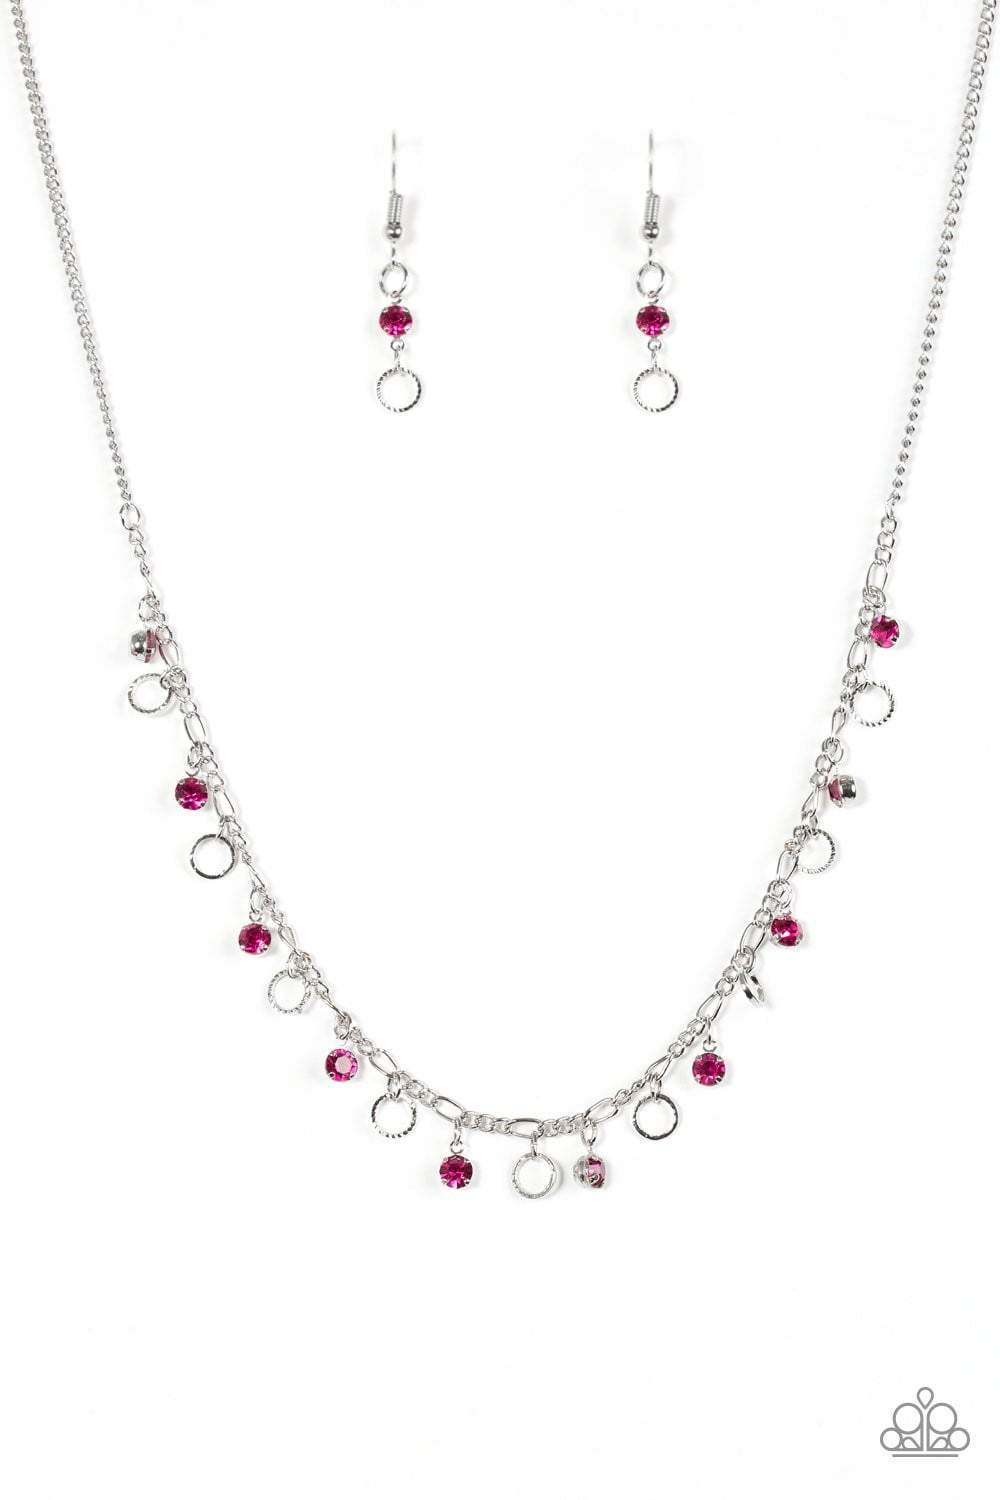 Parparazzi Dinner Party Demure - Pink Necklace - Bling It On Online